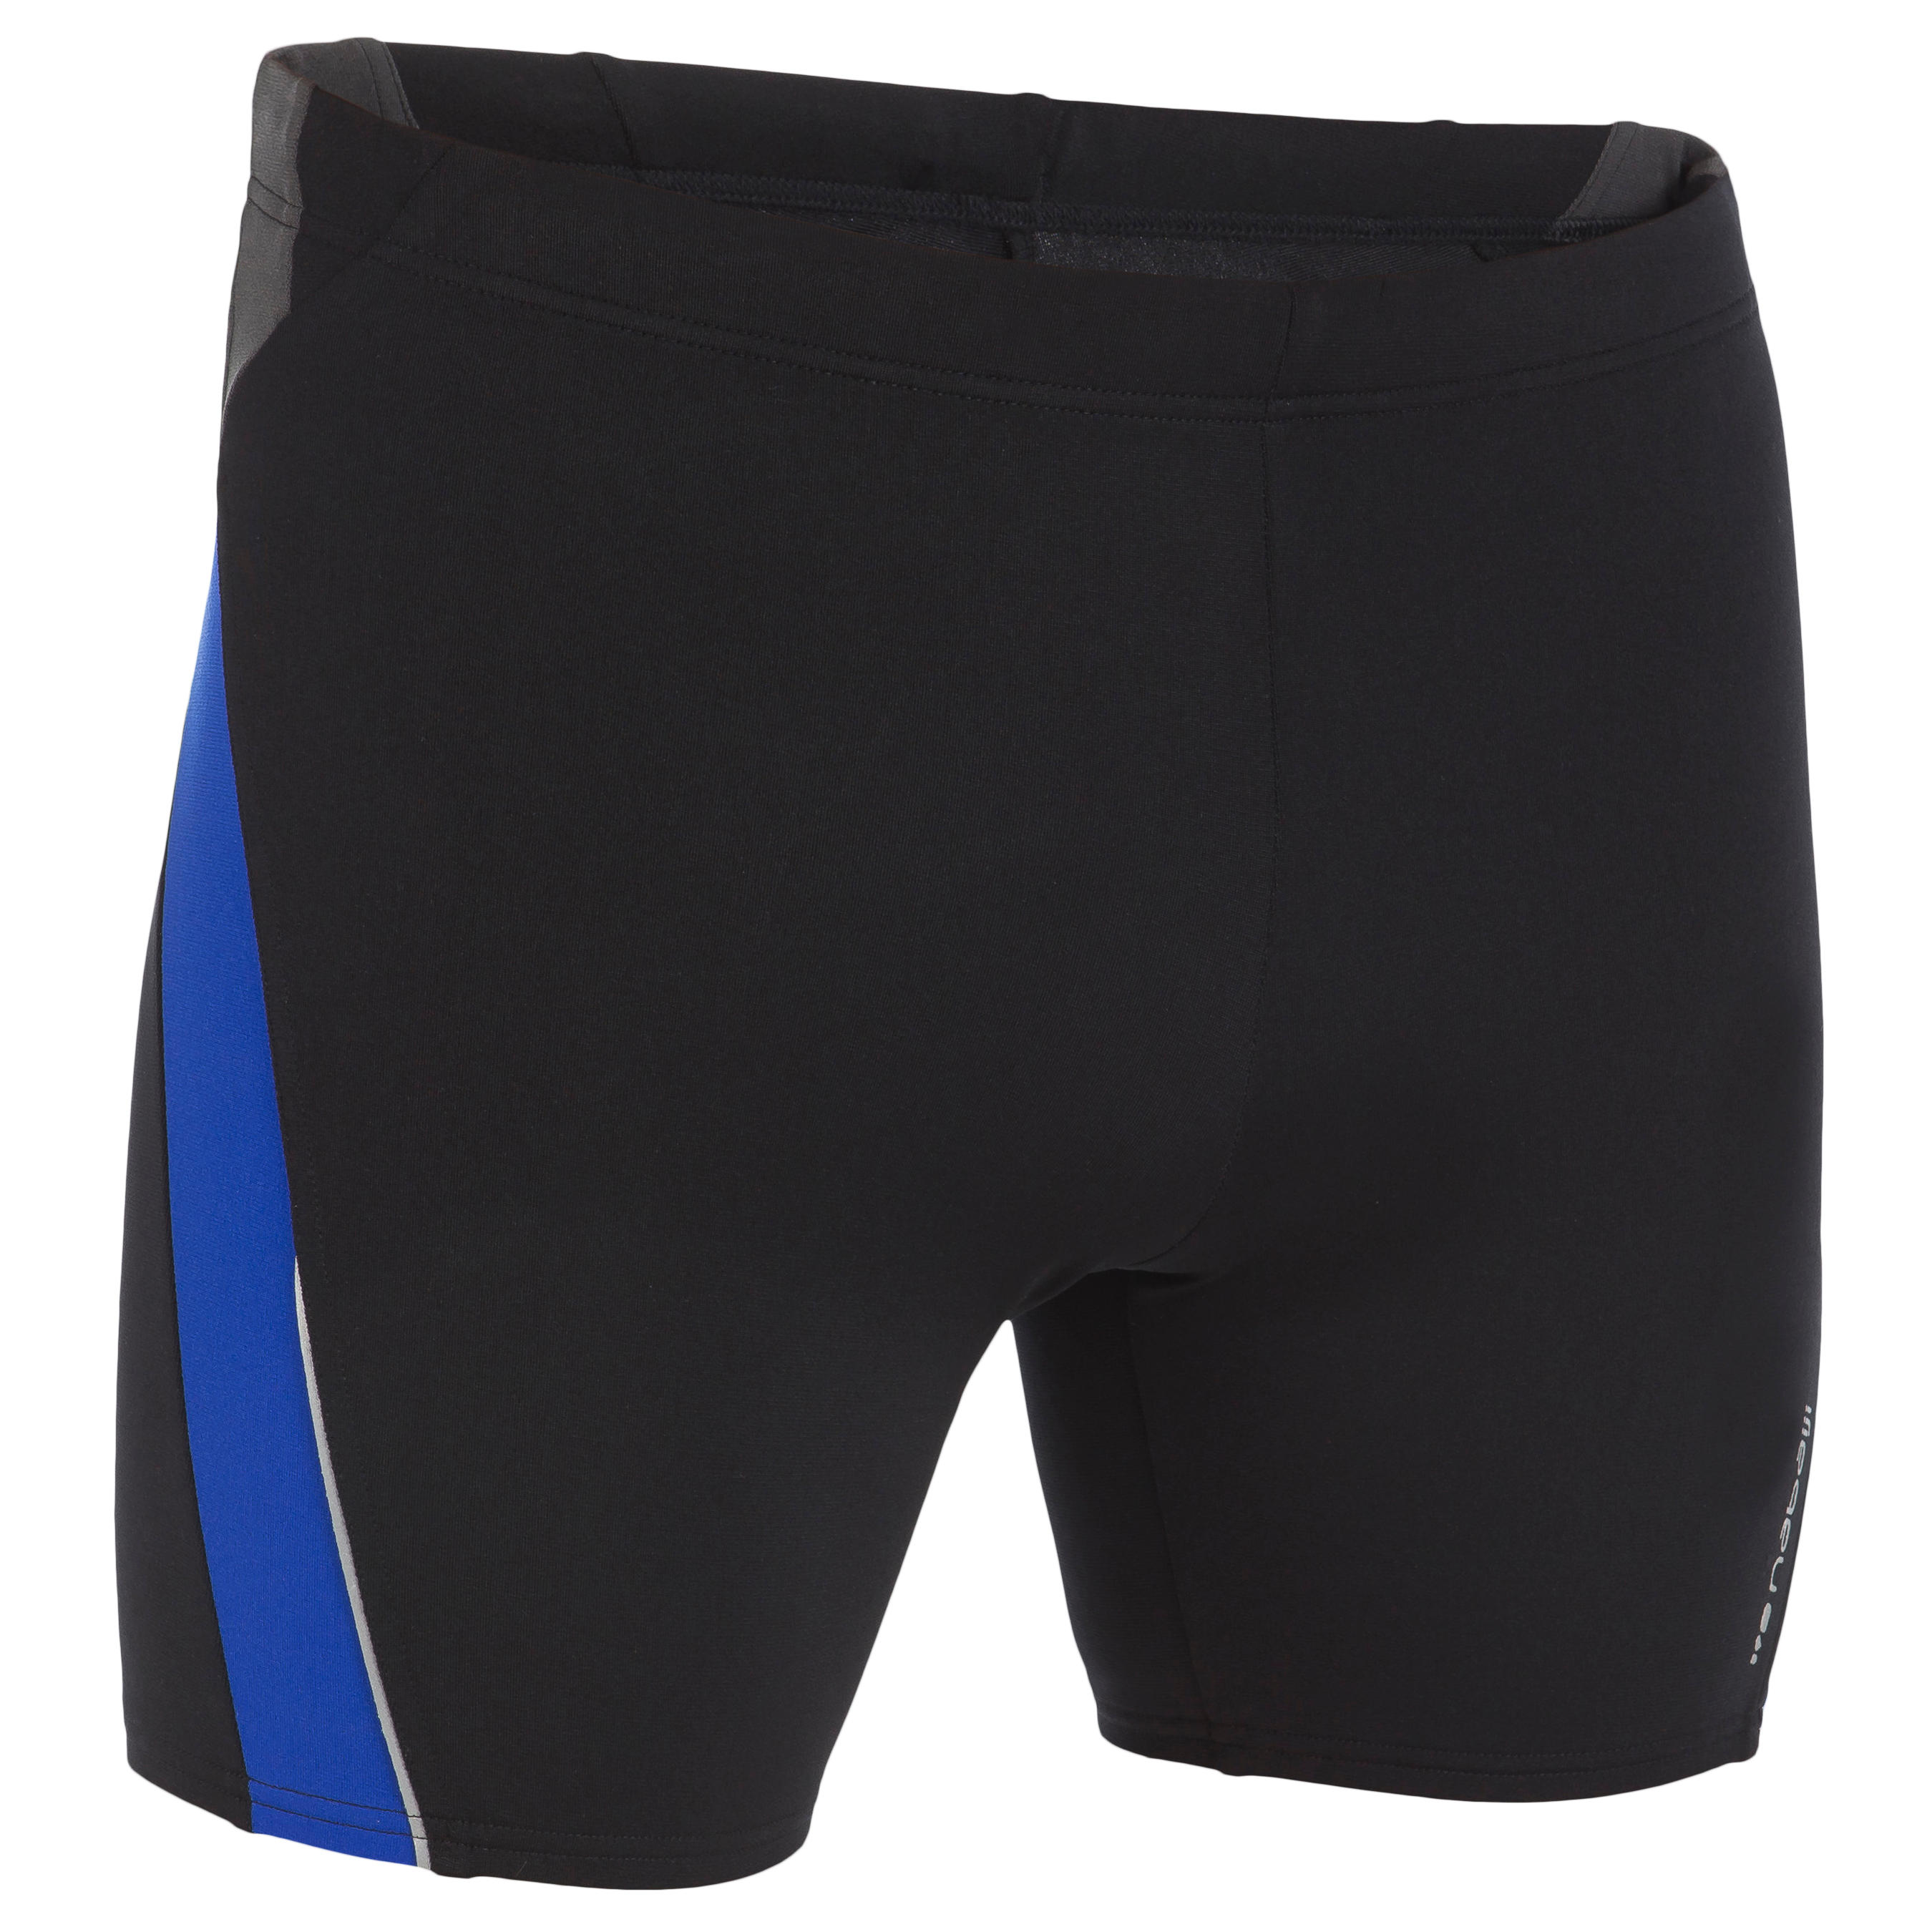 B-Ready Men's Long Boxer Swim Shorts - Hitam Biru